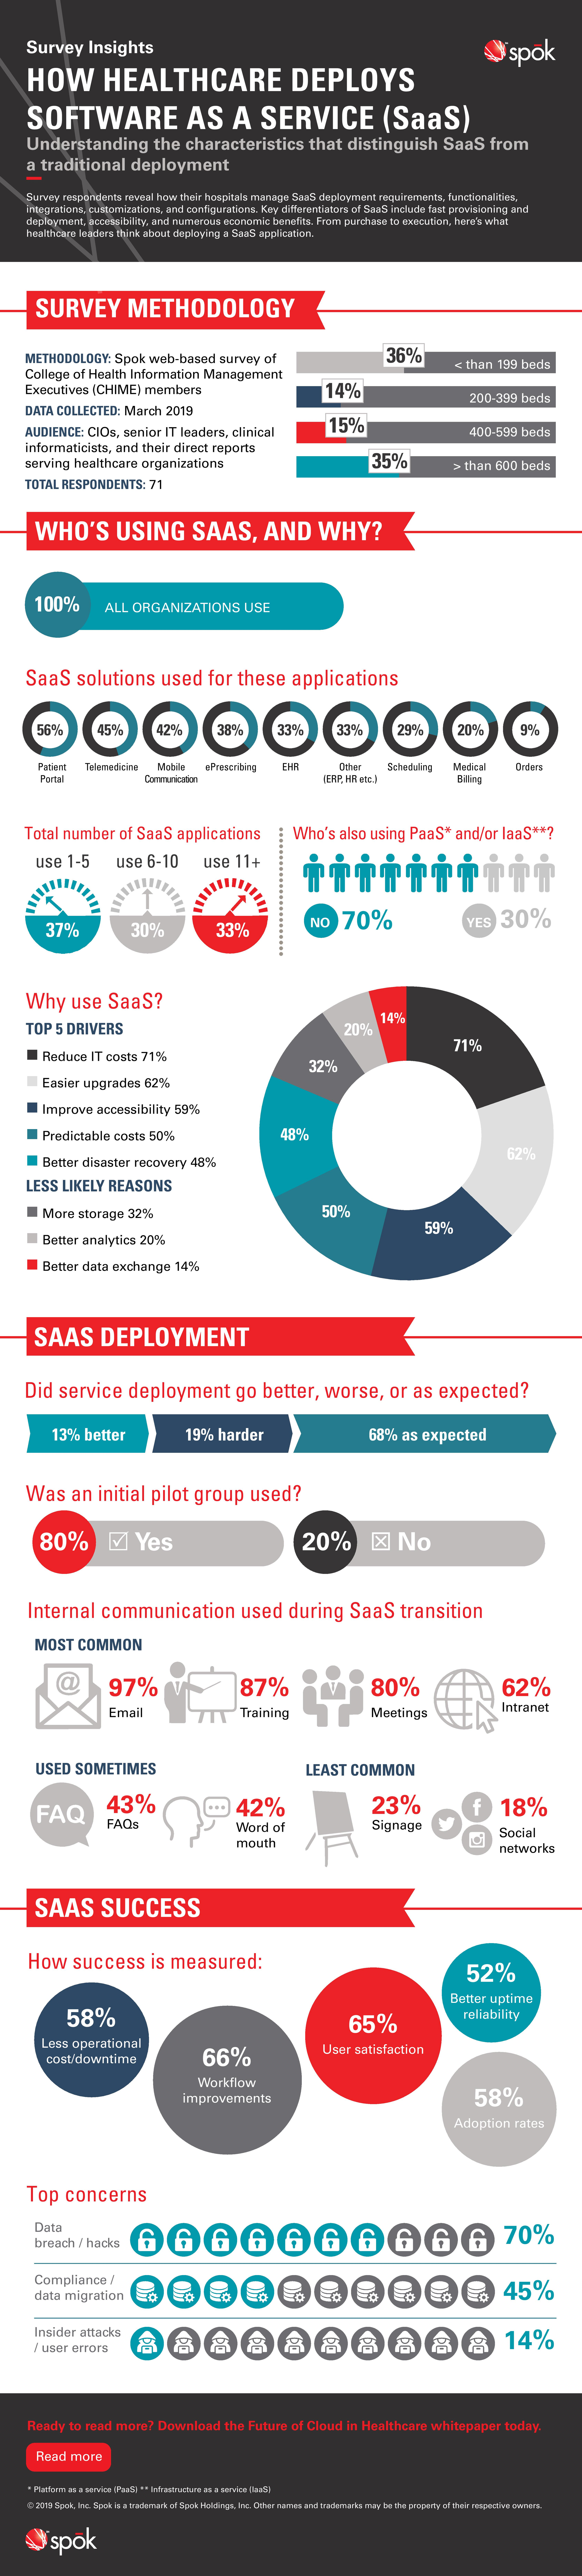 How Healthcare Deploys Software as a Service (SaaS)